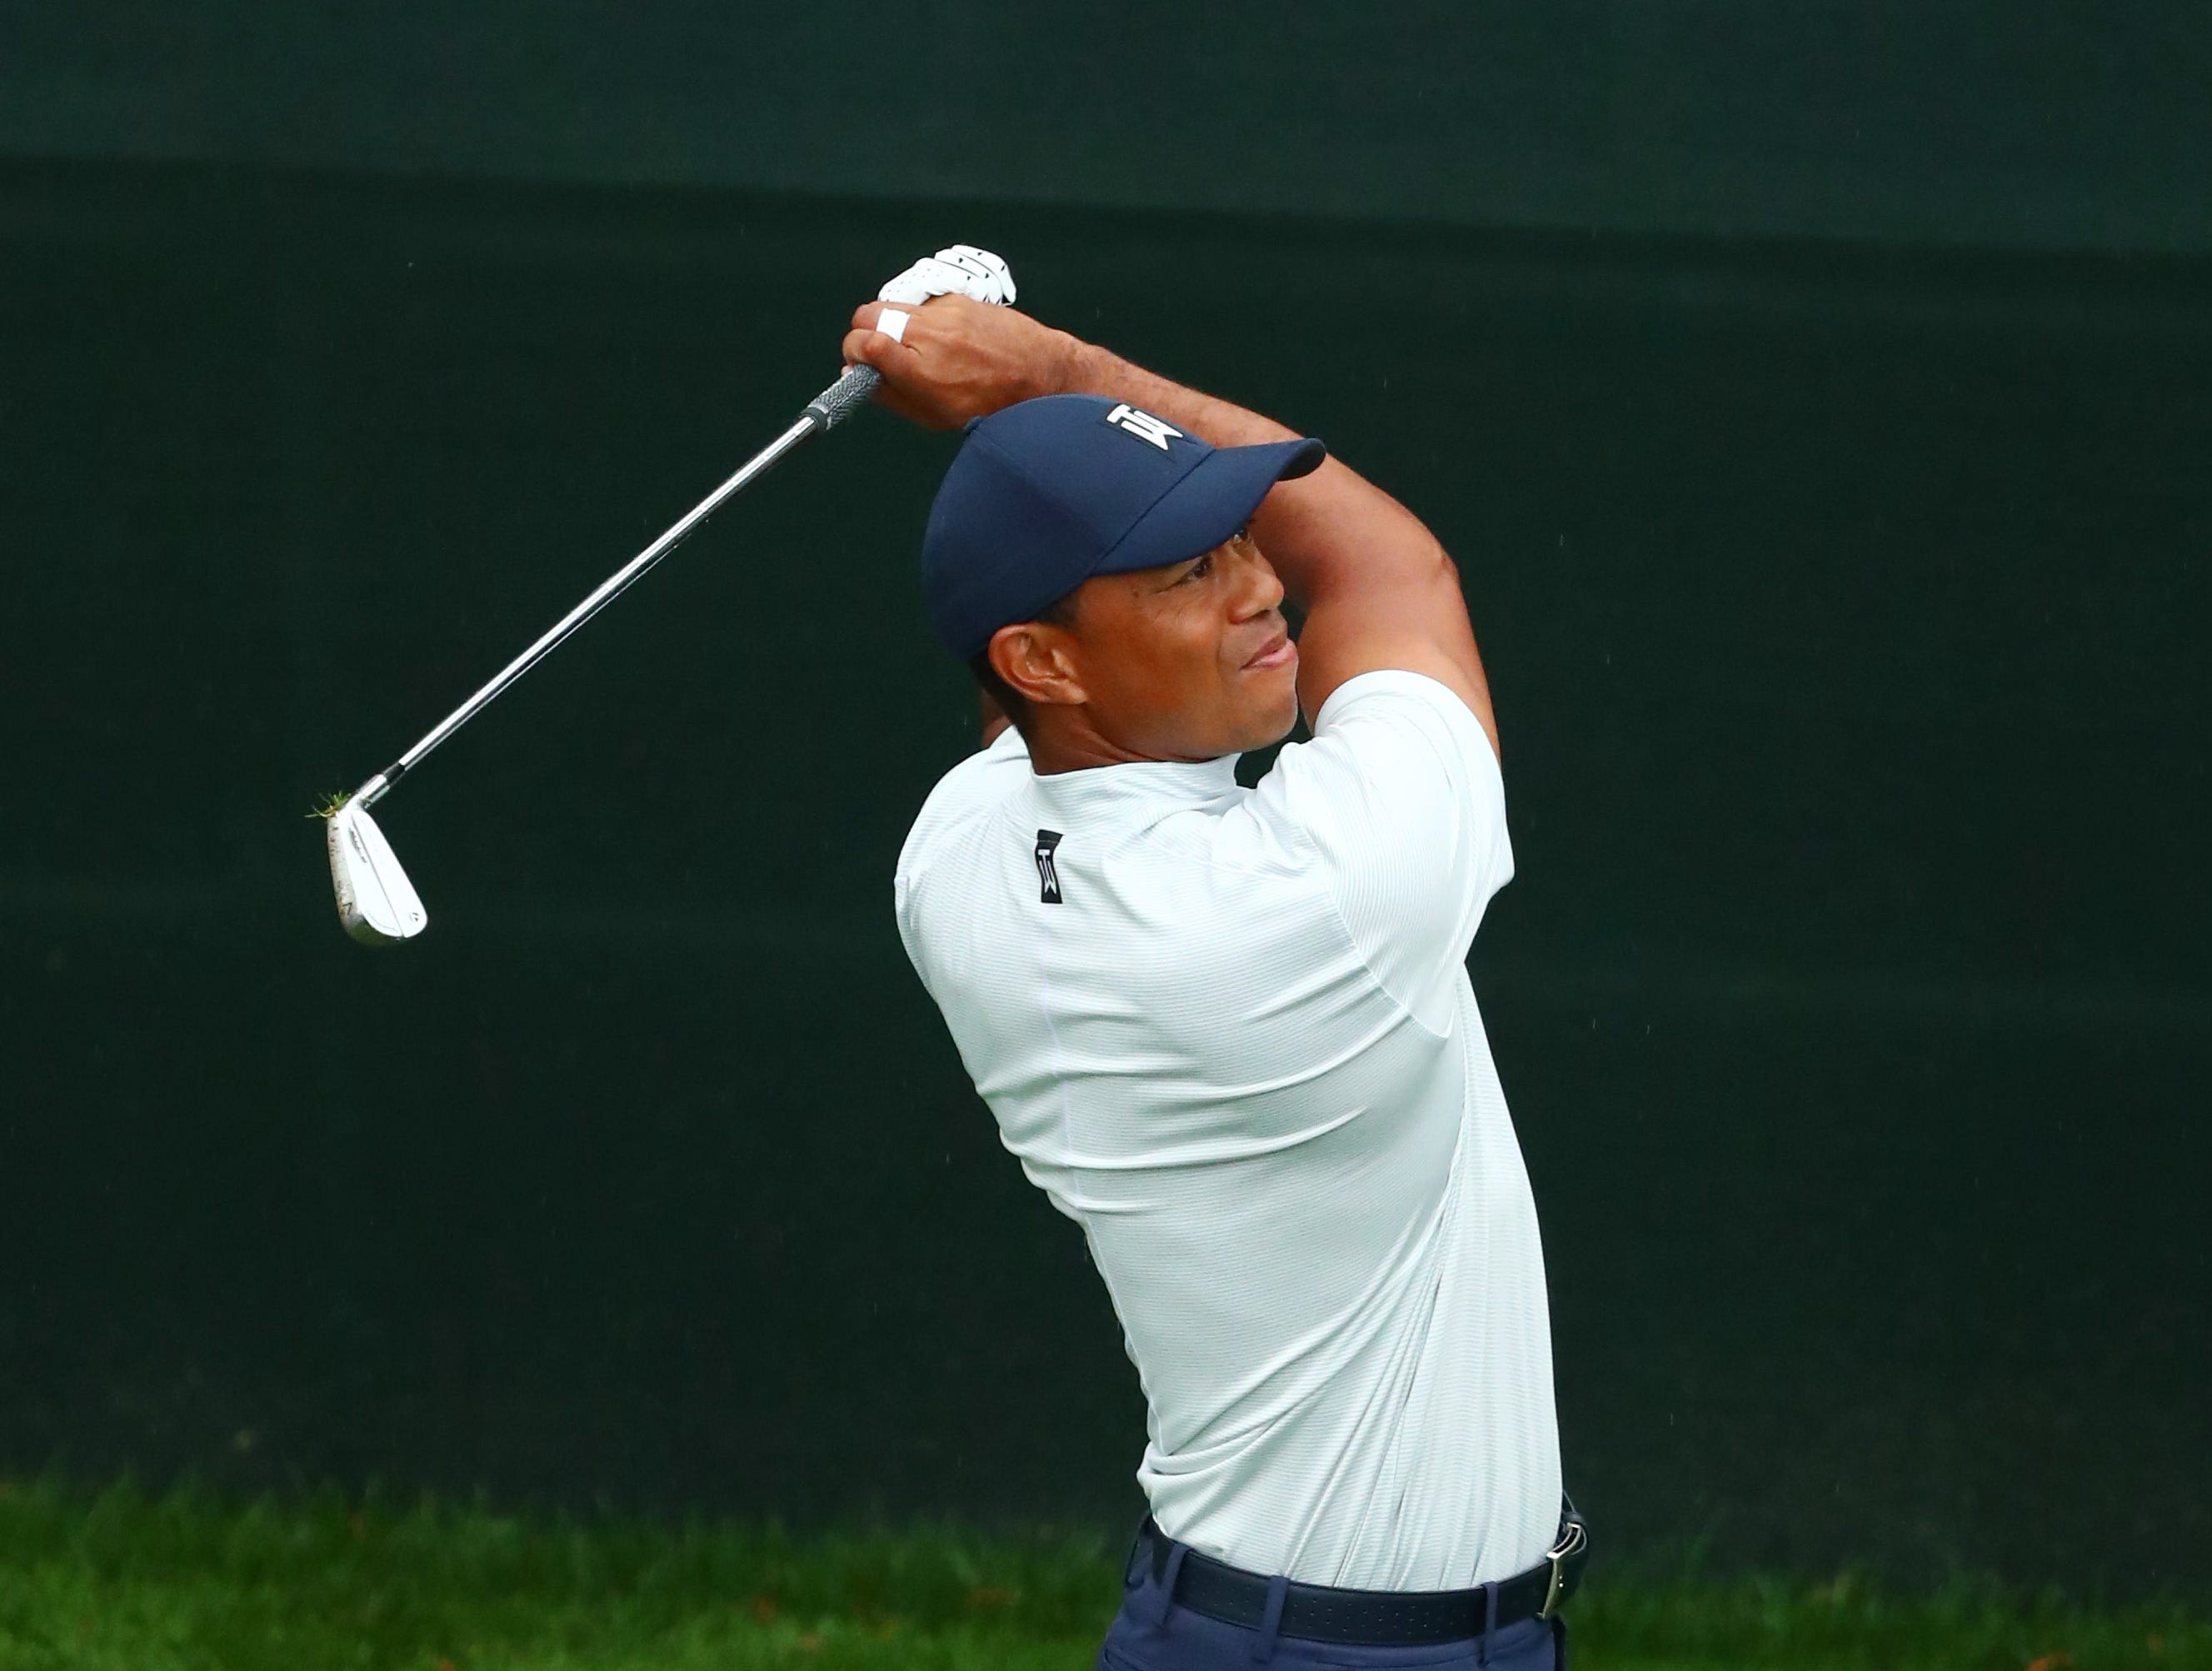 Apr 12, 2019; Augusta, GA, USA; Tiger Woods hits his tee shot on the 16th hole during the second round of The Masters golf tournament at Augusta National Golf Club. Mandatory Credit: Rob Schumacher-USA TODAY Sports